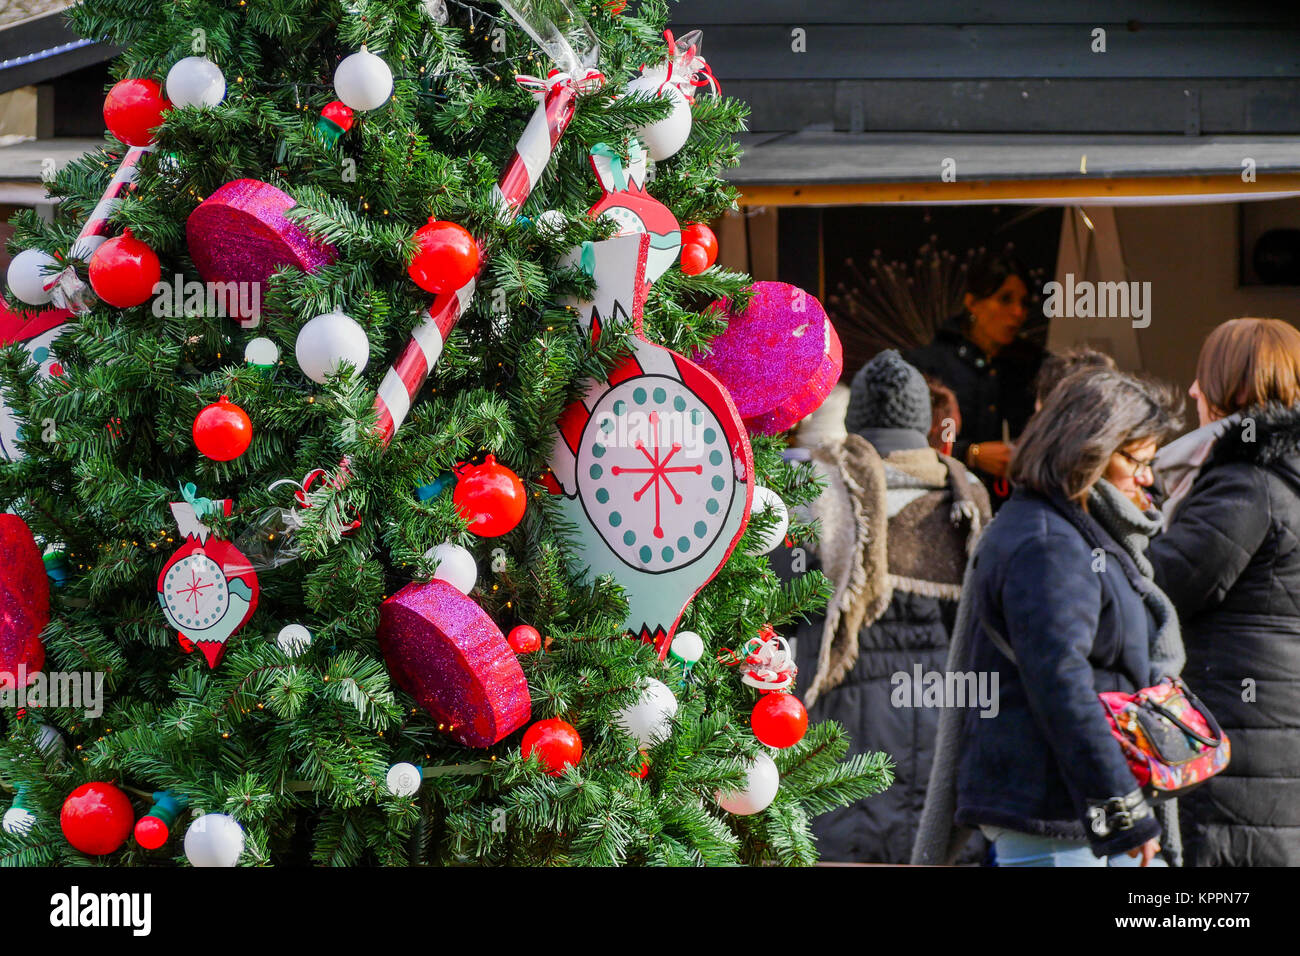 Christmas decorations at Carnot square, Lyon, France - Stock Image